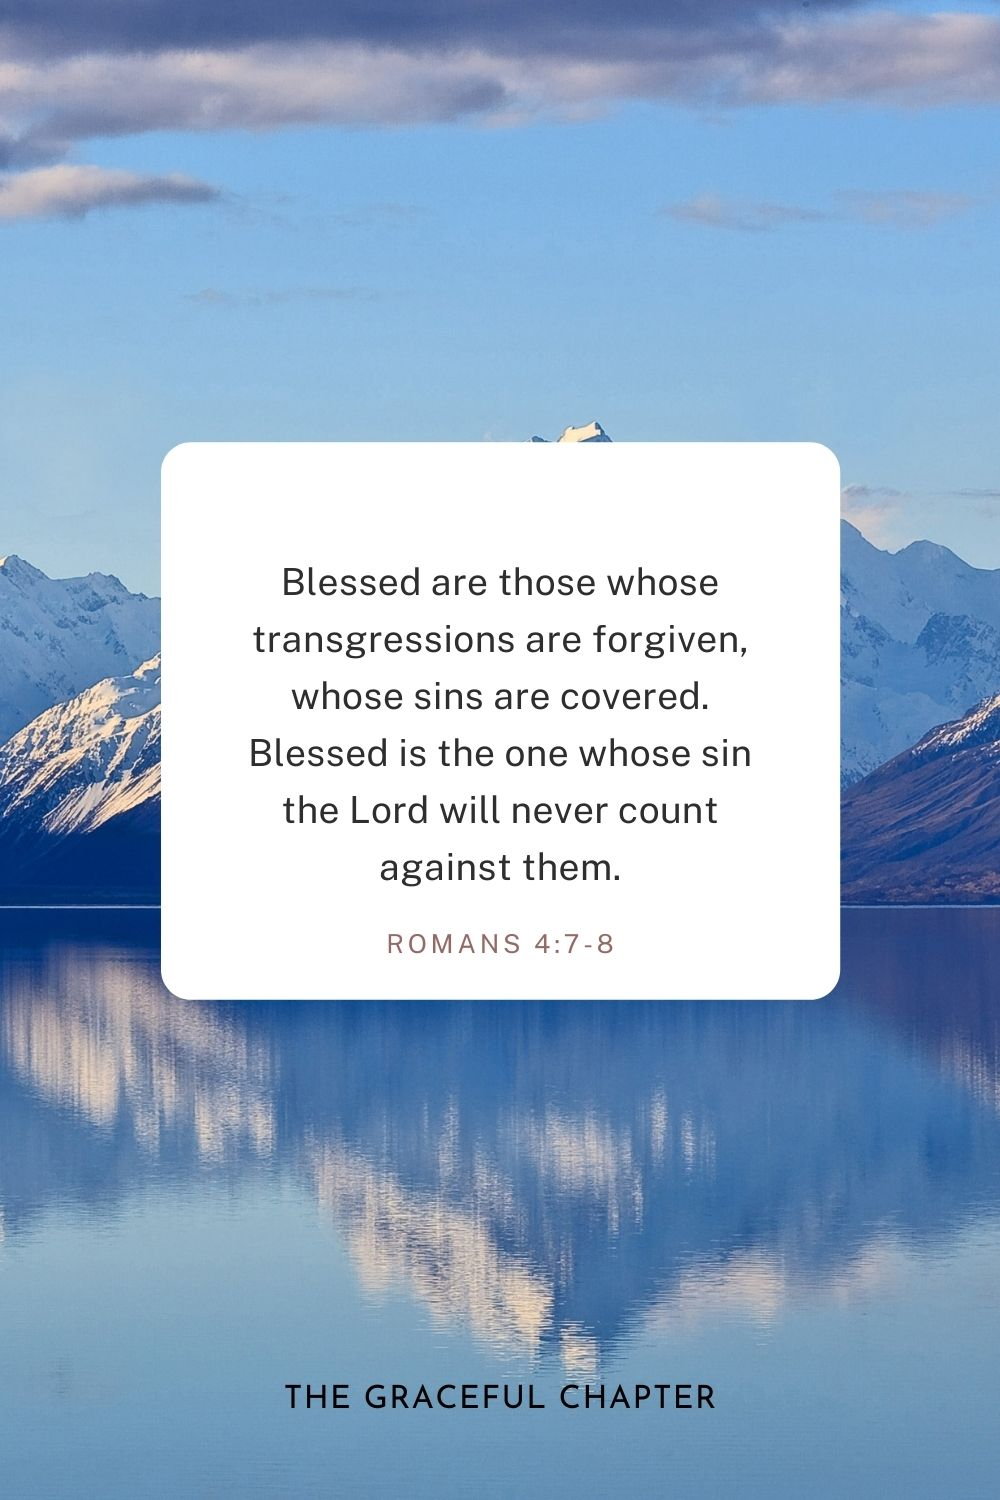 Blessed are those whose transgressions are forgiven, whose sins are covered. Blessed is the one whose sin the Lord will never count against them. Romans 4:7-8